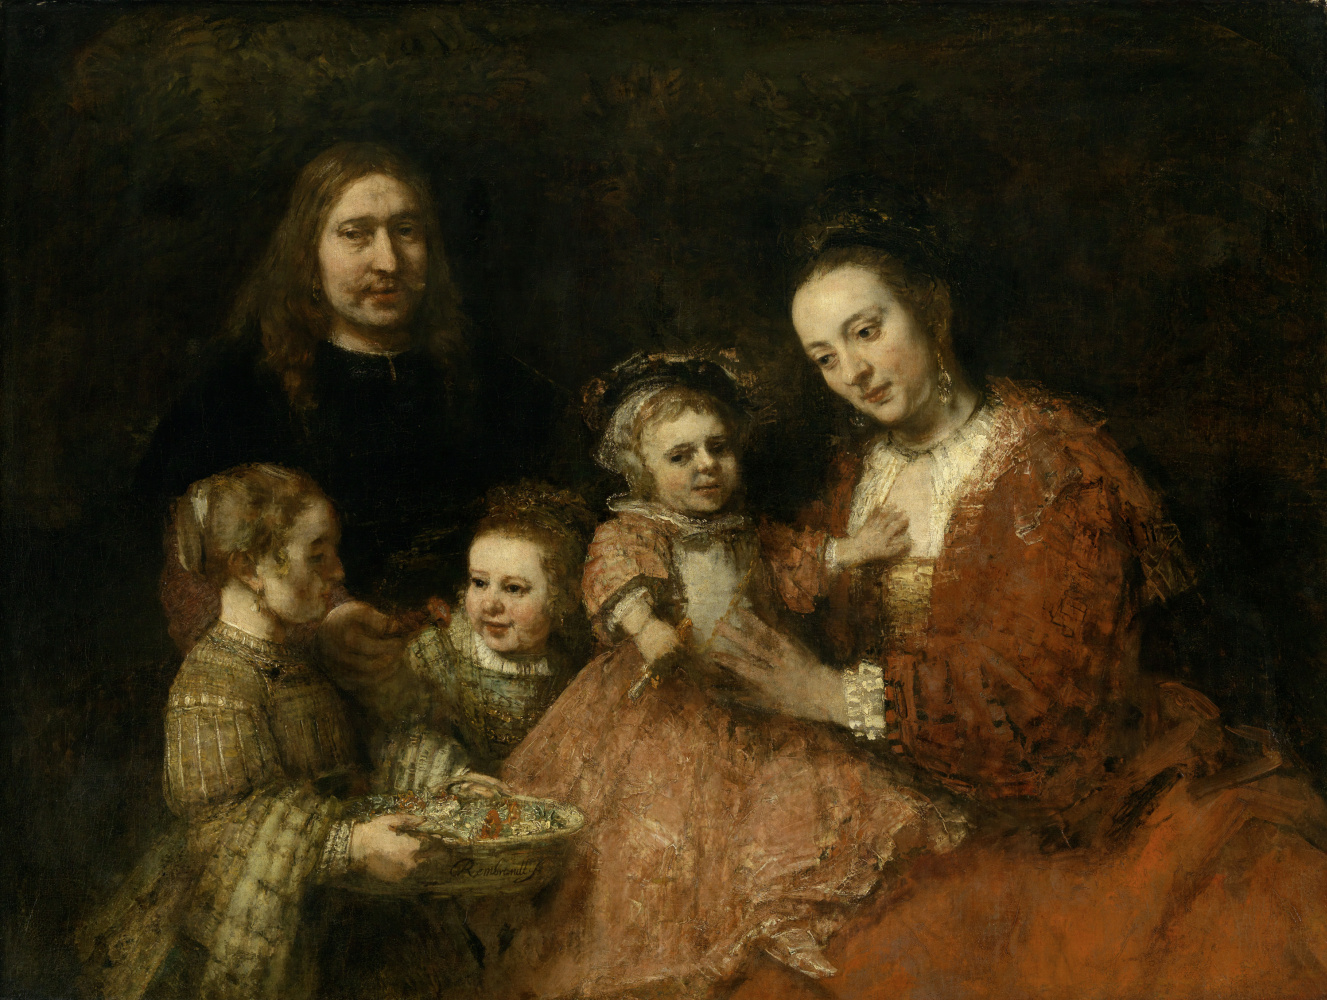 a biography of rembrandt harmenszoon van rijn a baroque painter Rembrandt van rijn rembrandt harmenszoon van rijn or ryn, 1606–69, dutch painter, etcher, and draftsman, b leiden rembrandt is acknowledged as the greatest master of the dutch school leiden rembrandt is acknowledged as the.